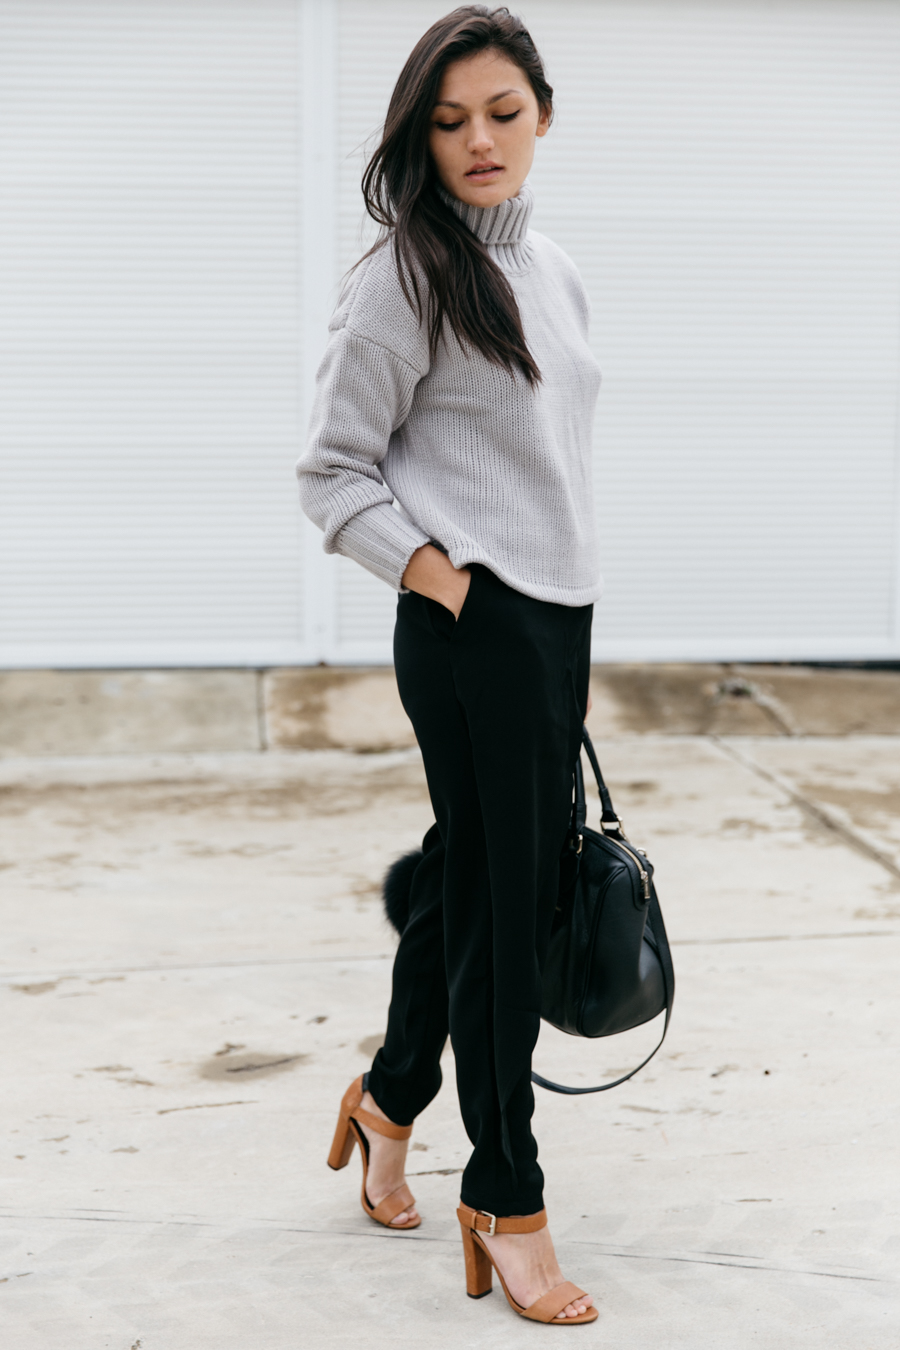 Perth fashion blogger. Roll neck sweater outfit.